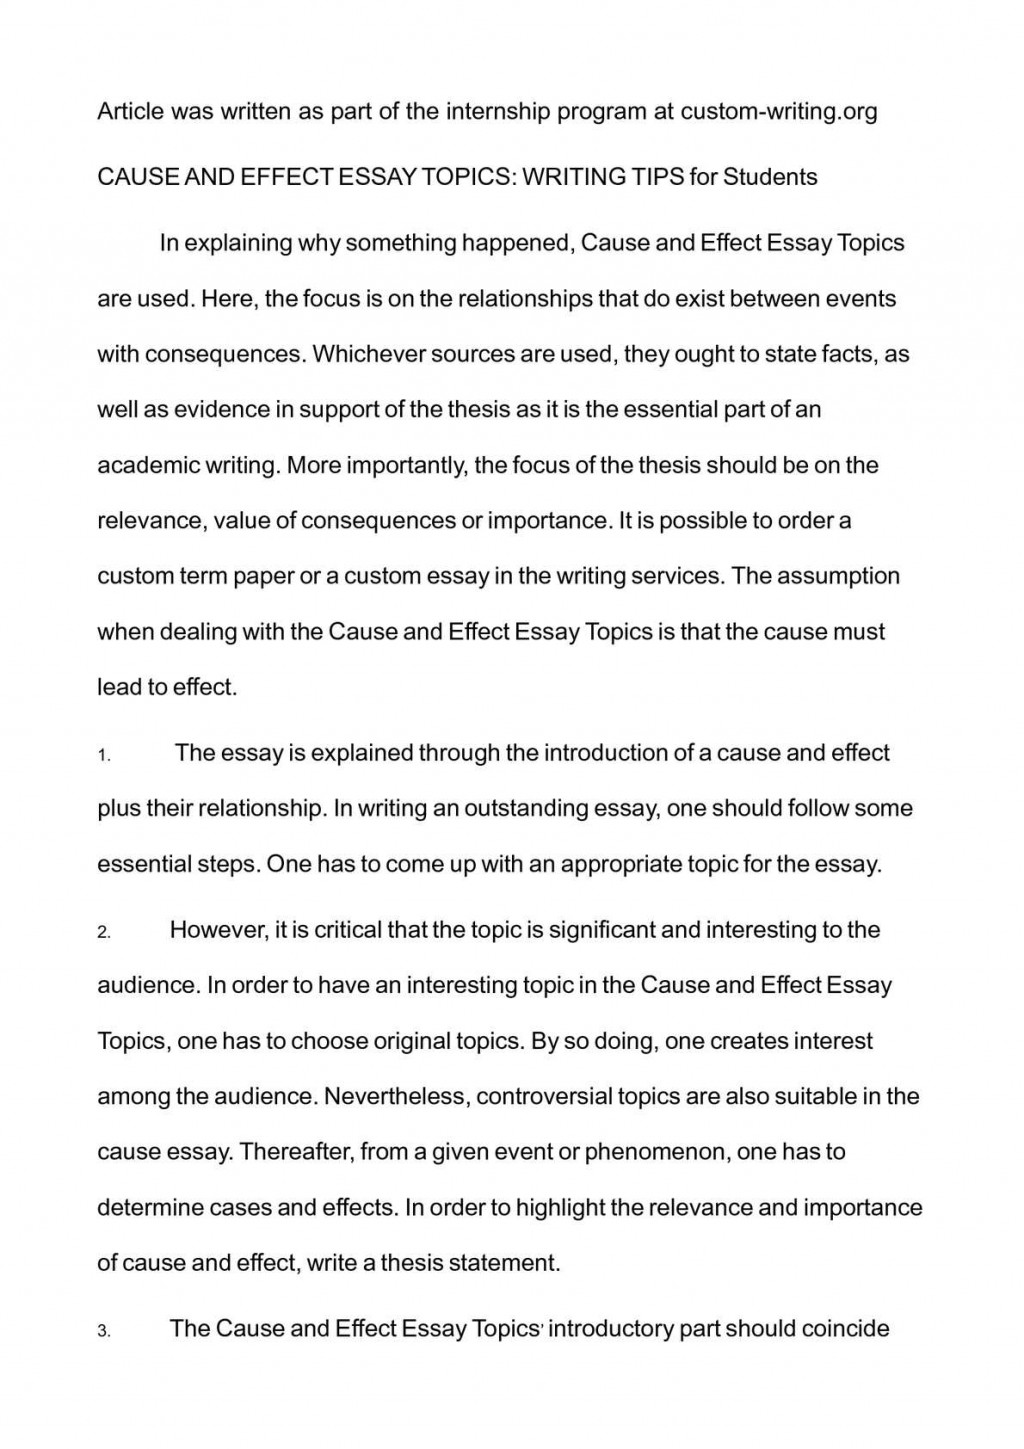 002 Essay Example P1 Examples Of Cause And Effect Rare Topics Writing Prompts Large